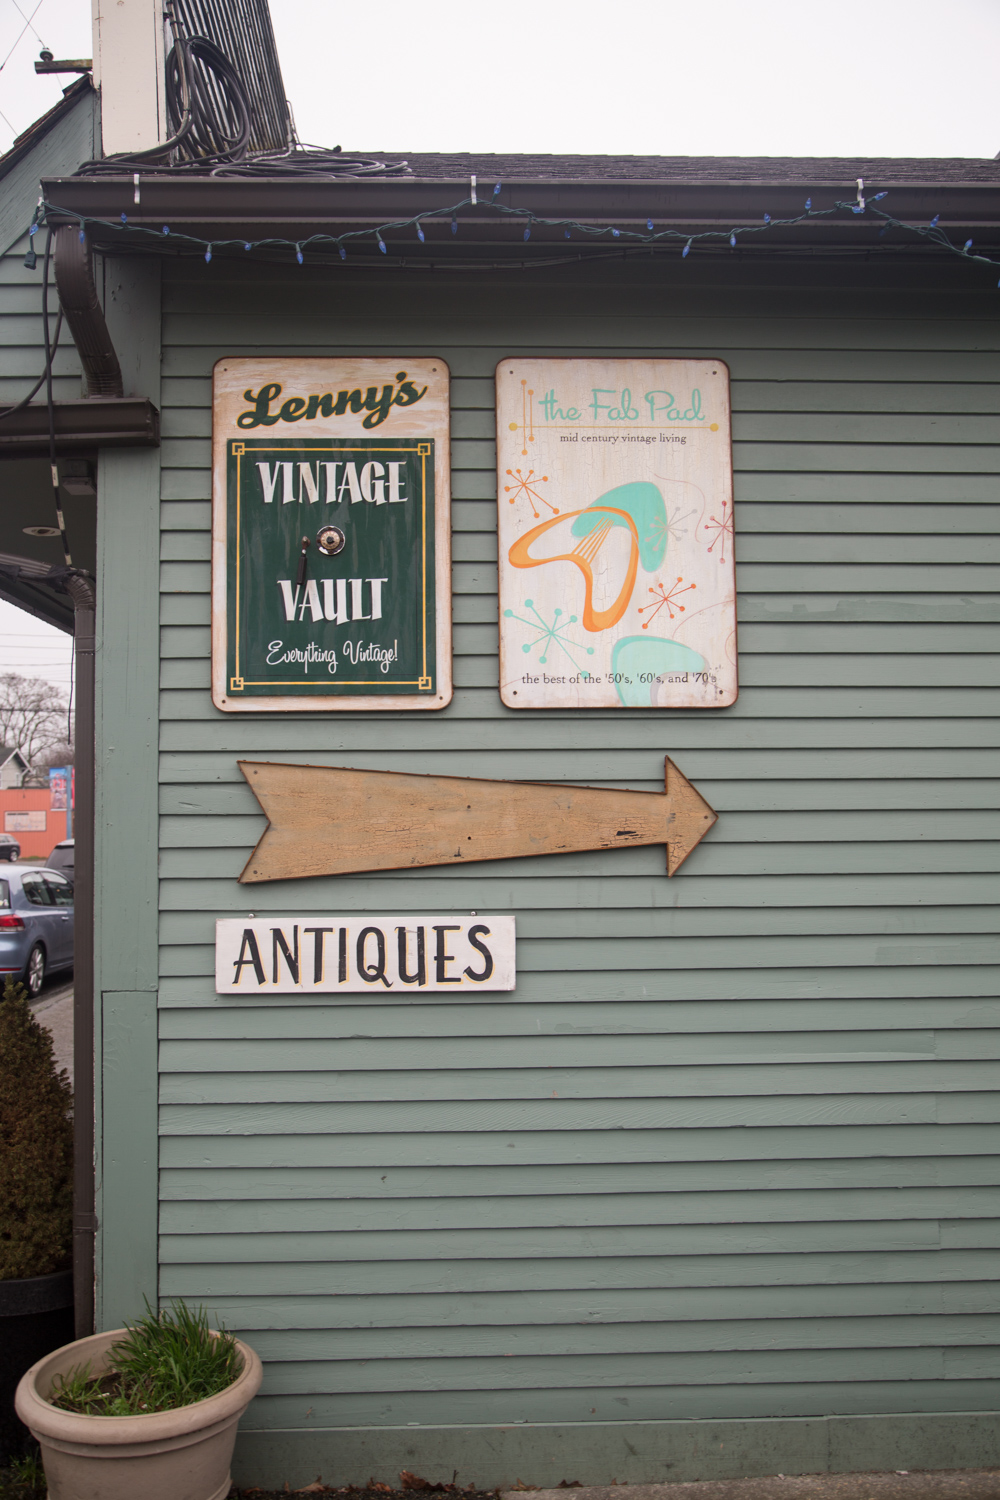 Steveston British Columbia aka Storybrooke from Once Upon a Time